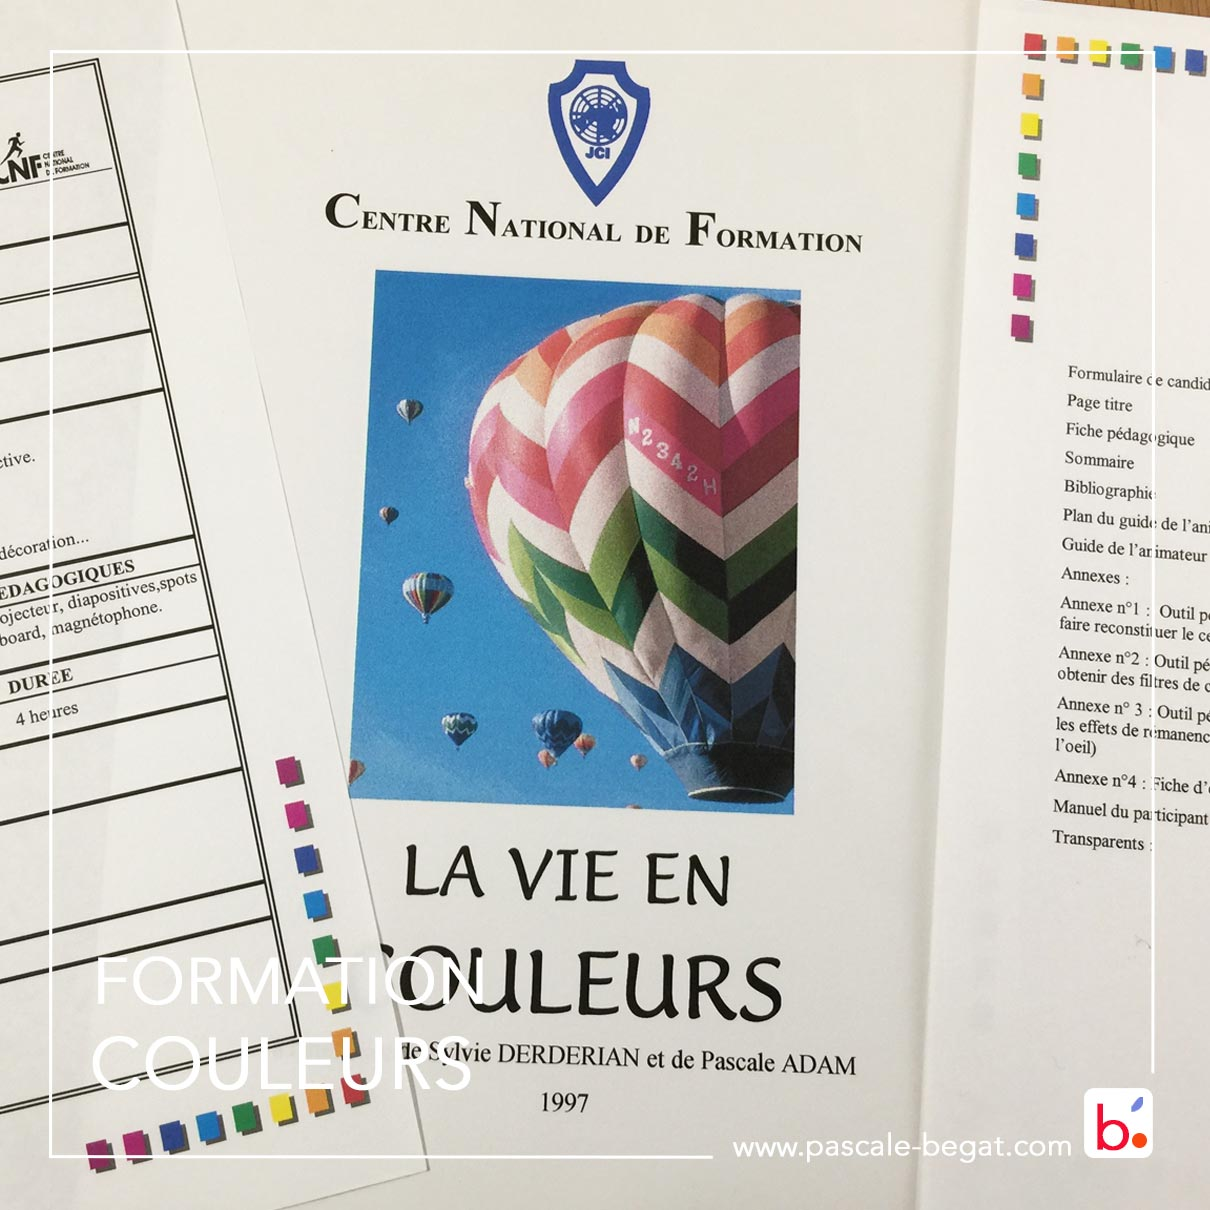 La vie en couleurs - Module de formation 1er prix de la conception de modules de formations à la JCEF 1997